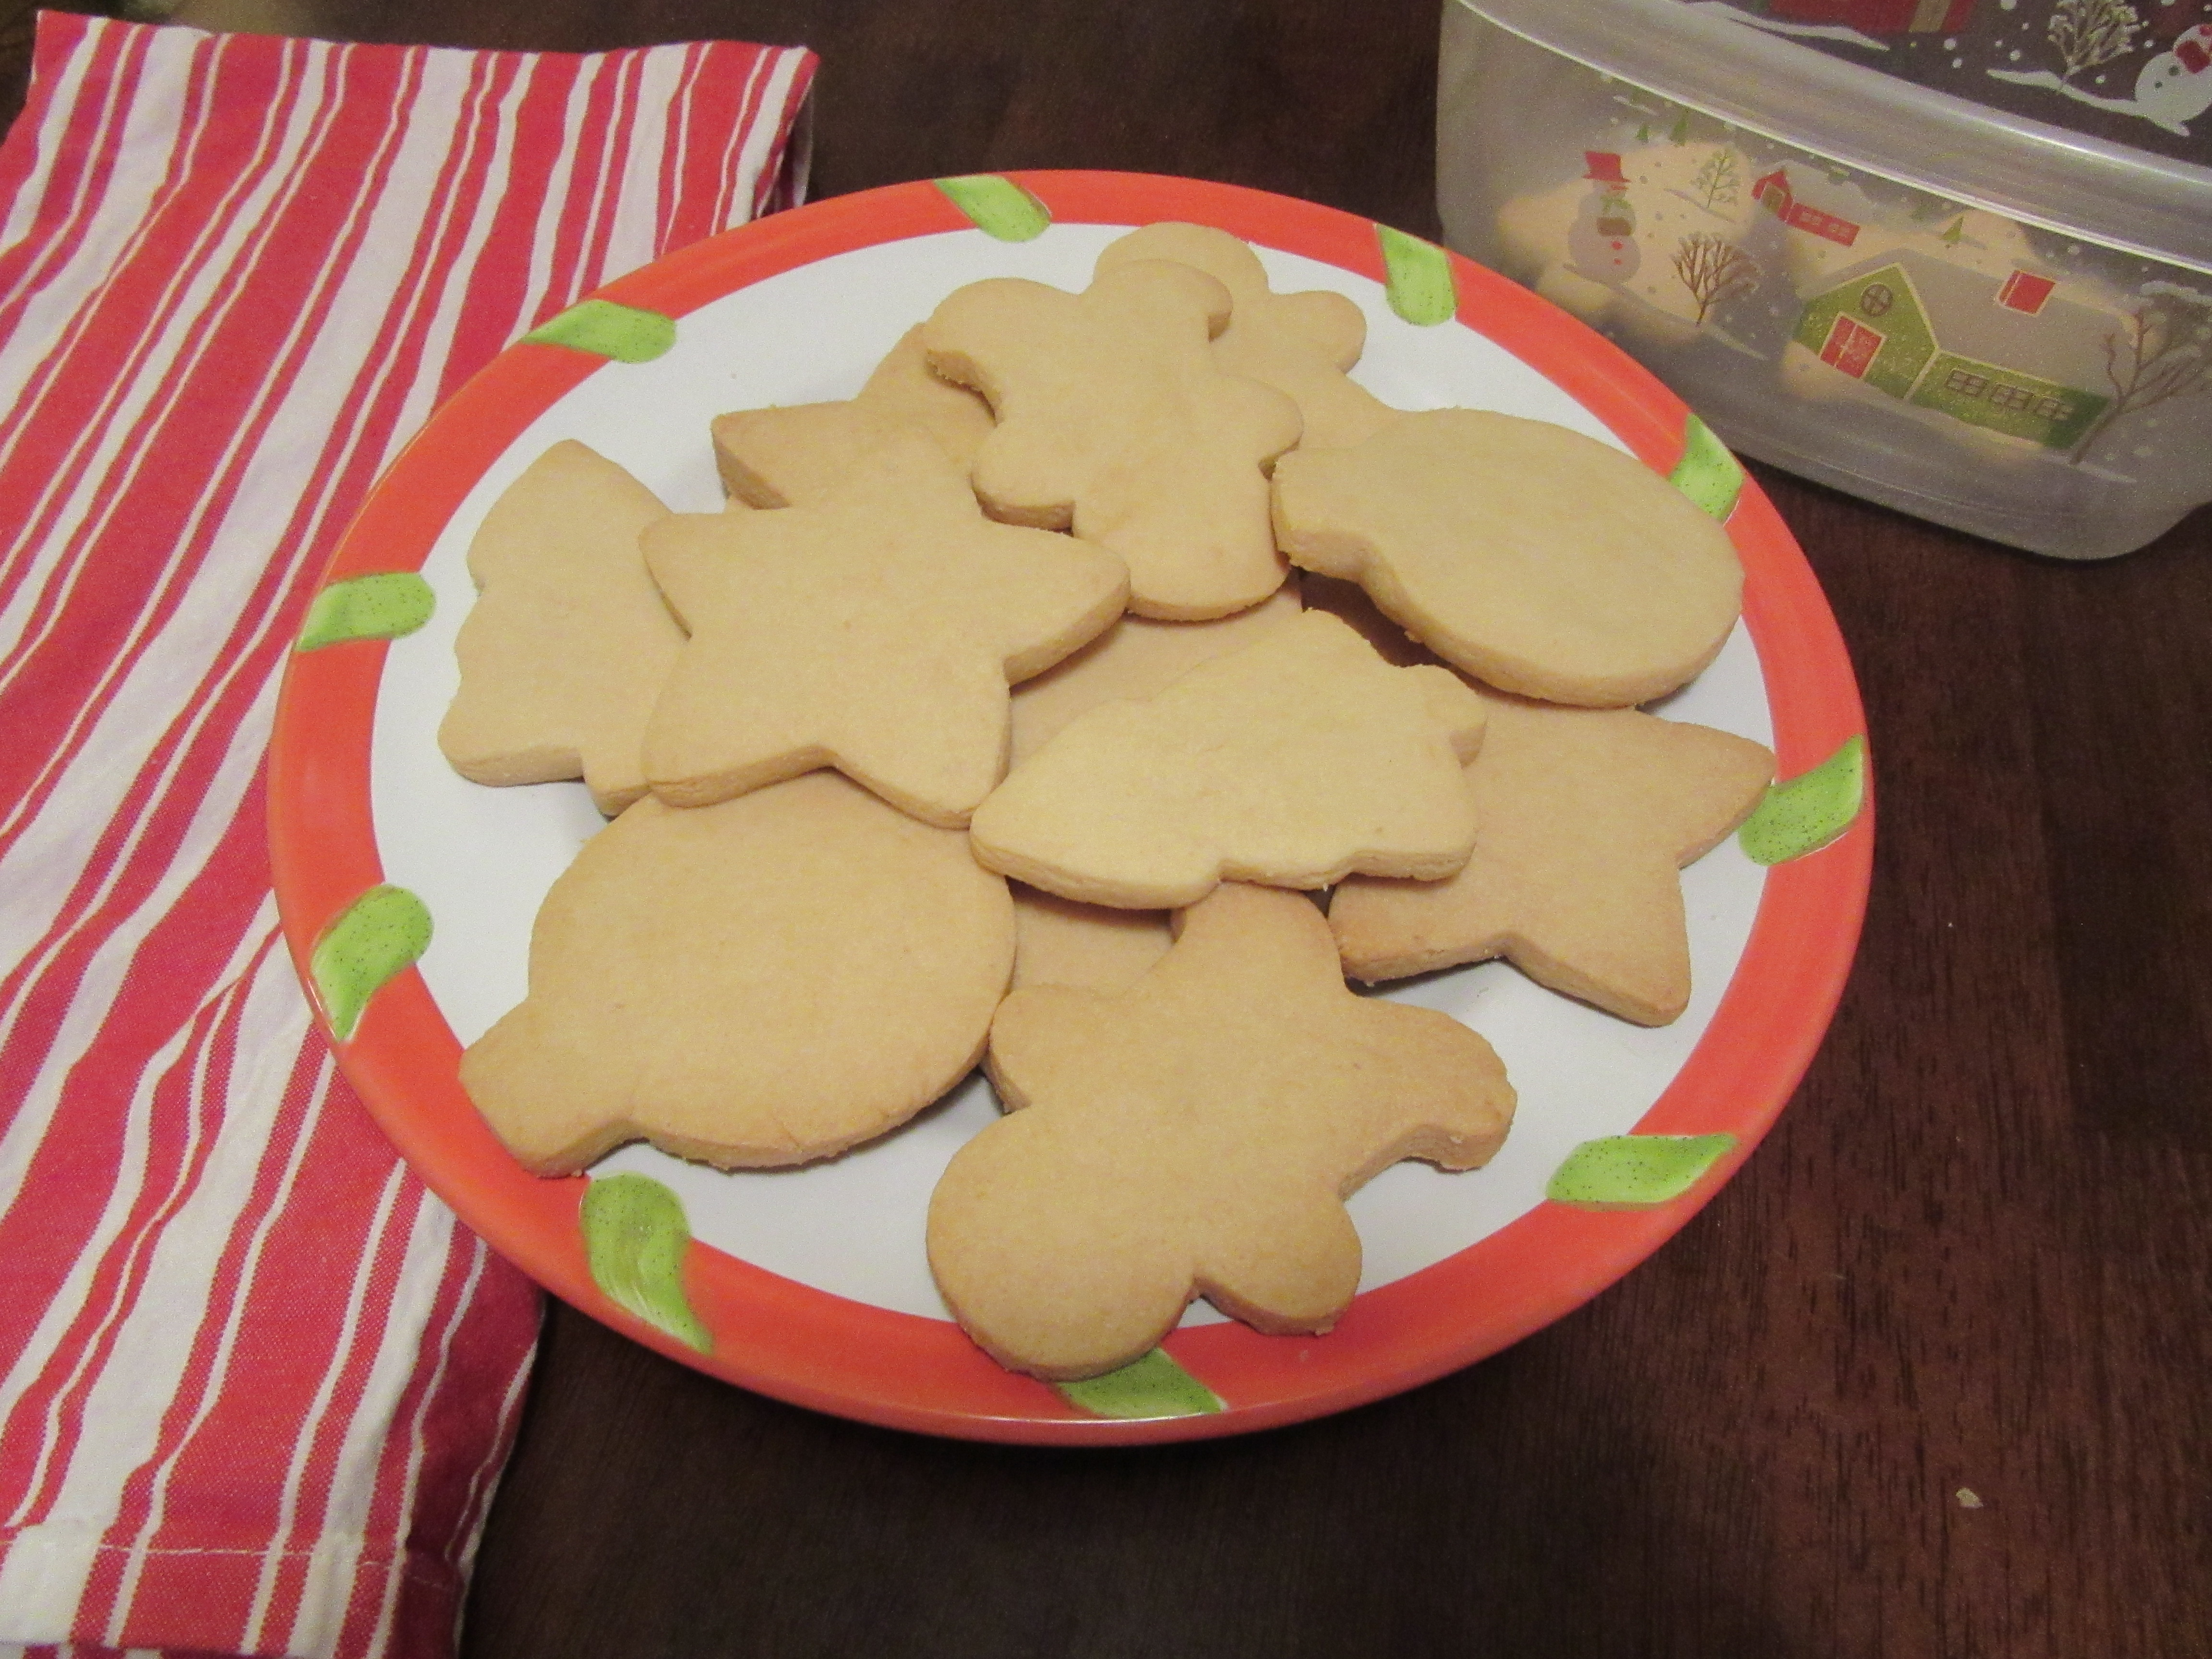 Shortbread cookies are ready to eat.